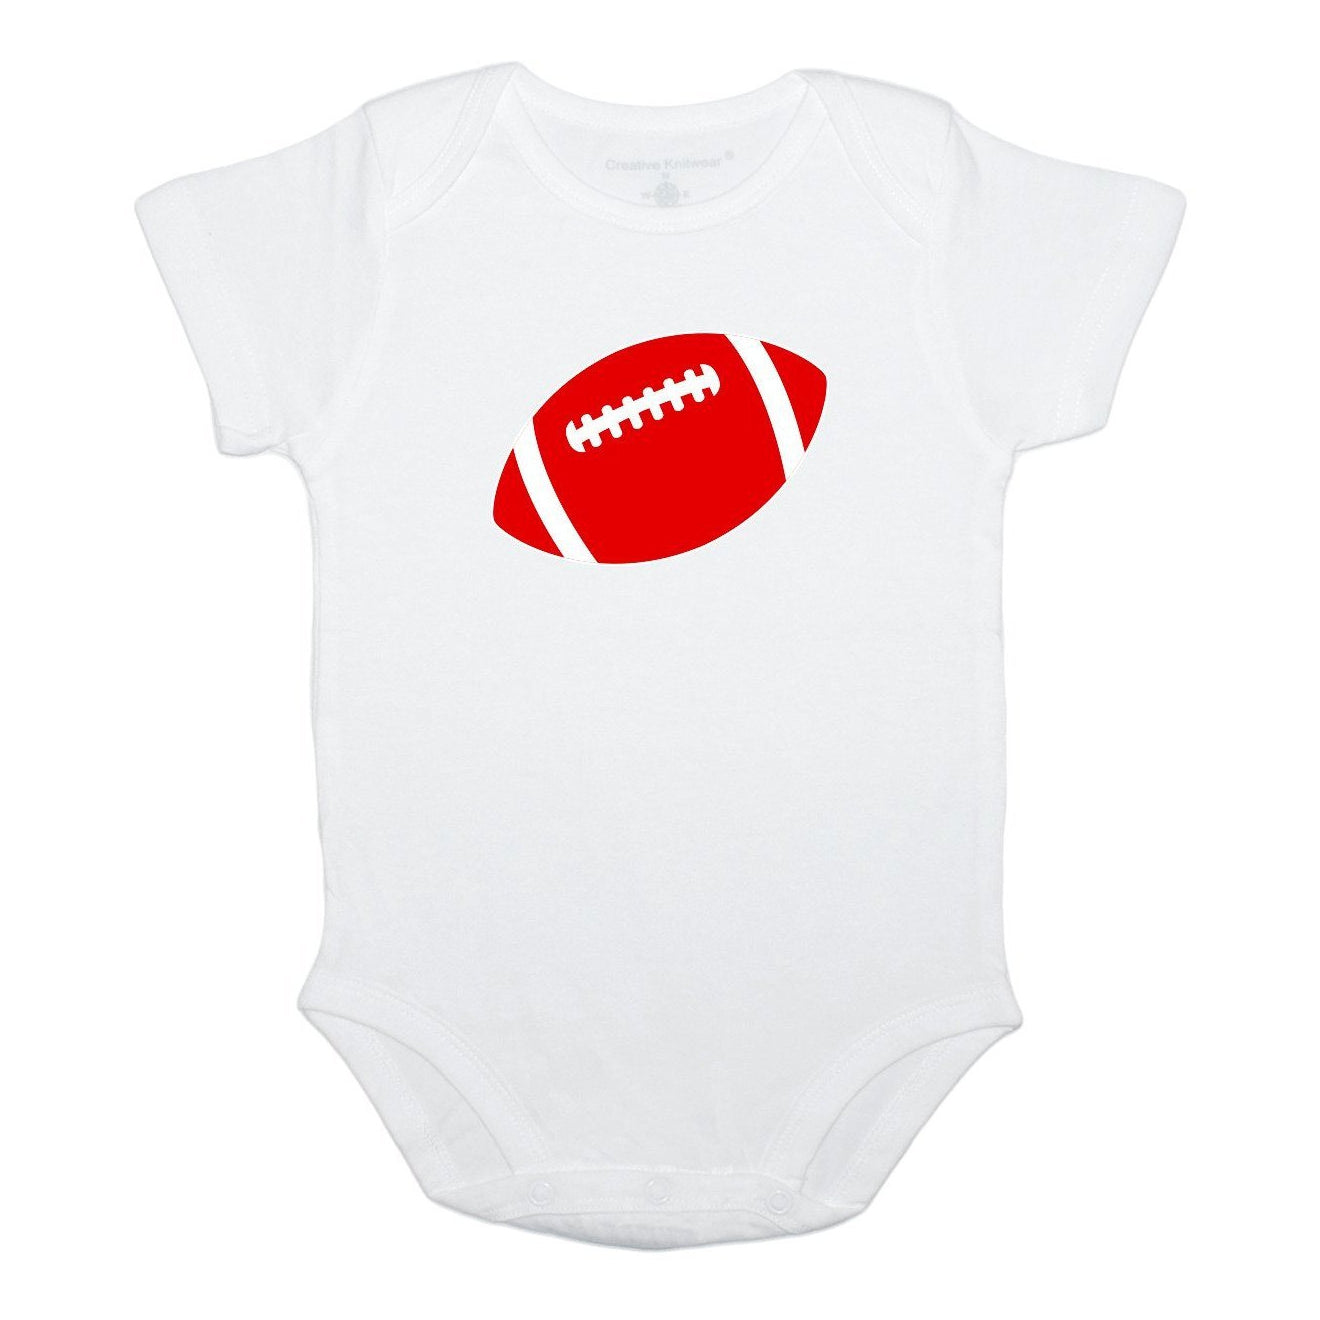 Ohio State University Short Sleeve Onesie